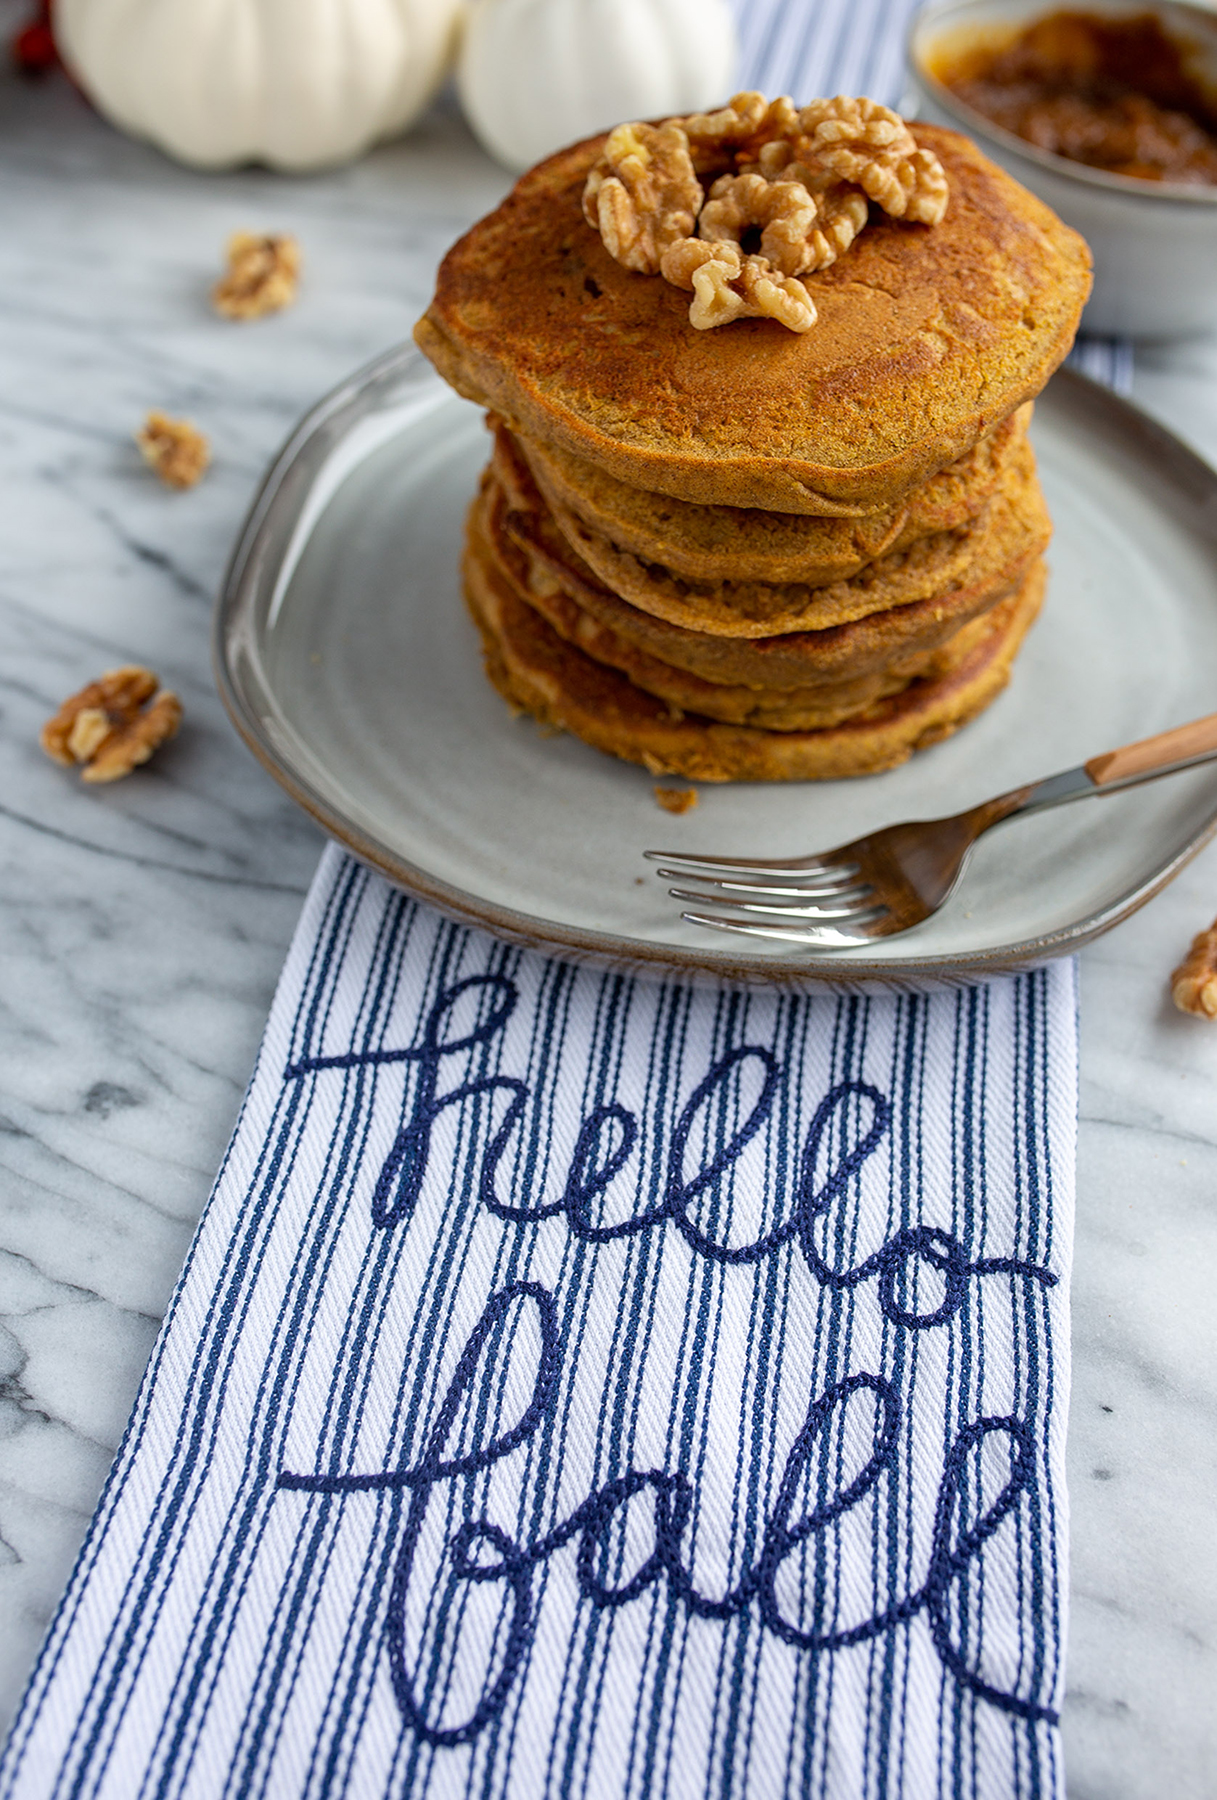 The best pumpkin pancakes served with walnuts